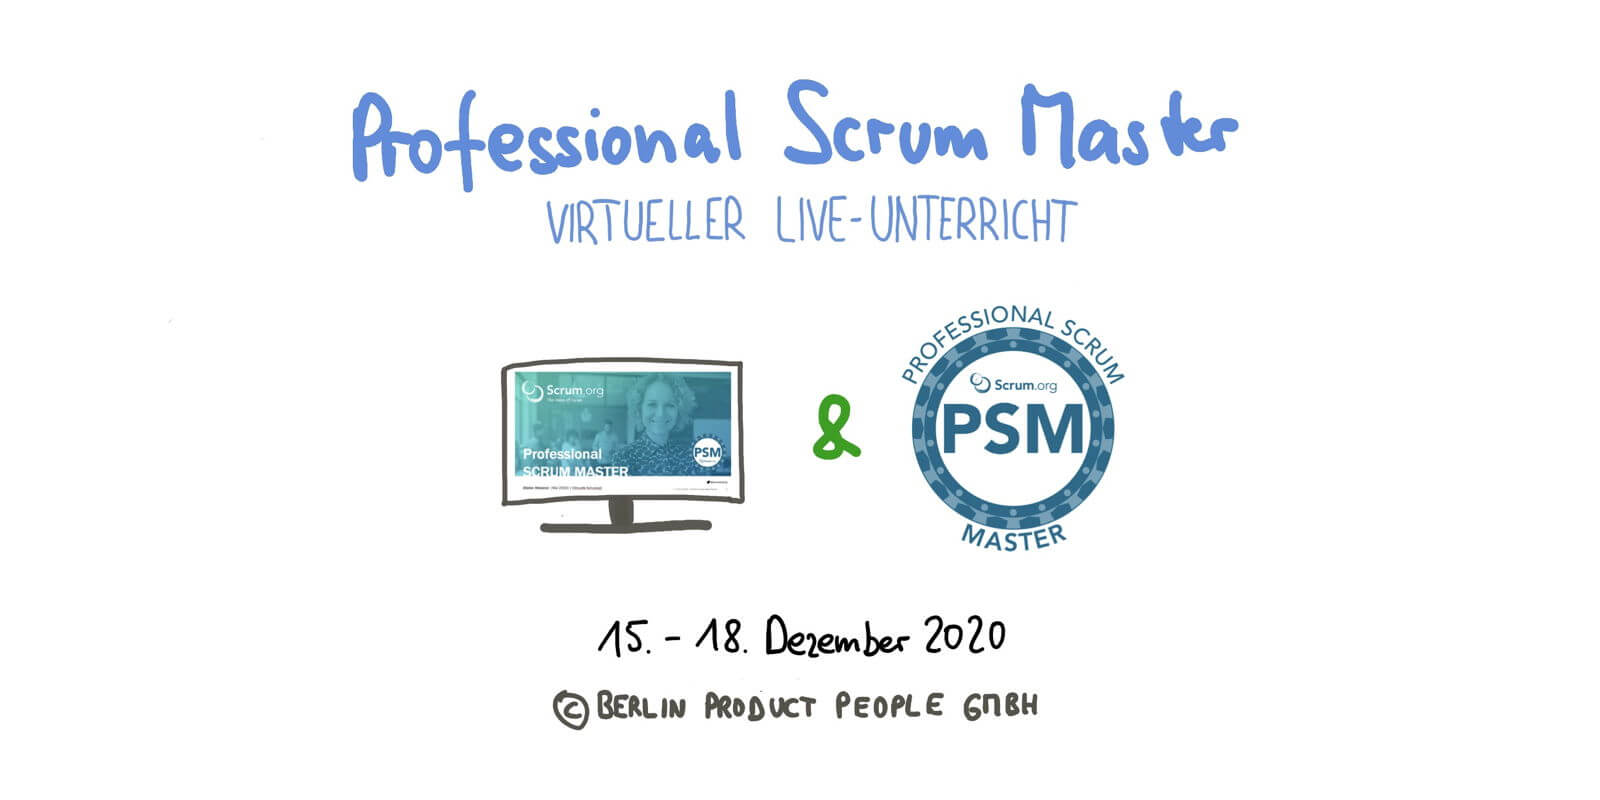 📅 🖥 💯 🇩🇪 Professional Scrum Master Training PSM I — Online: December 15-18, 2020 — Berlin Product People GmbH